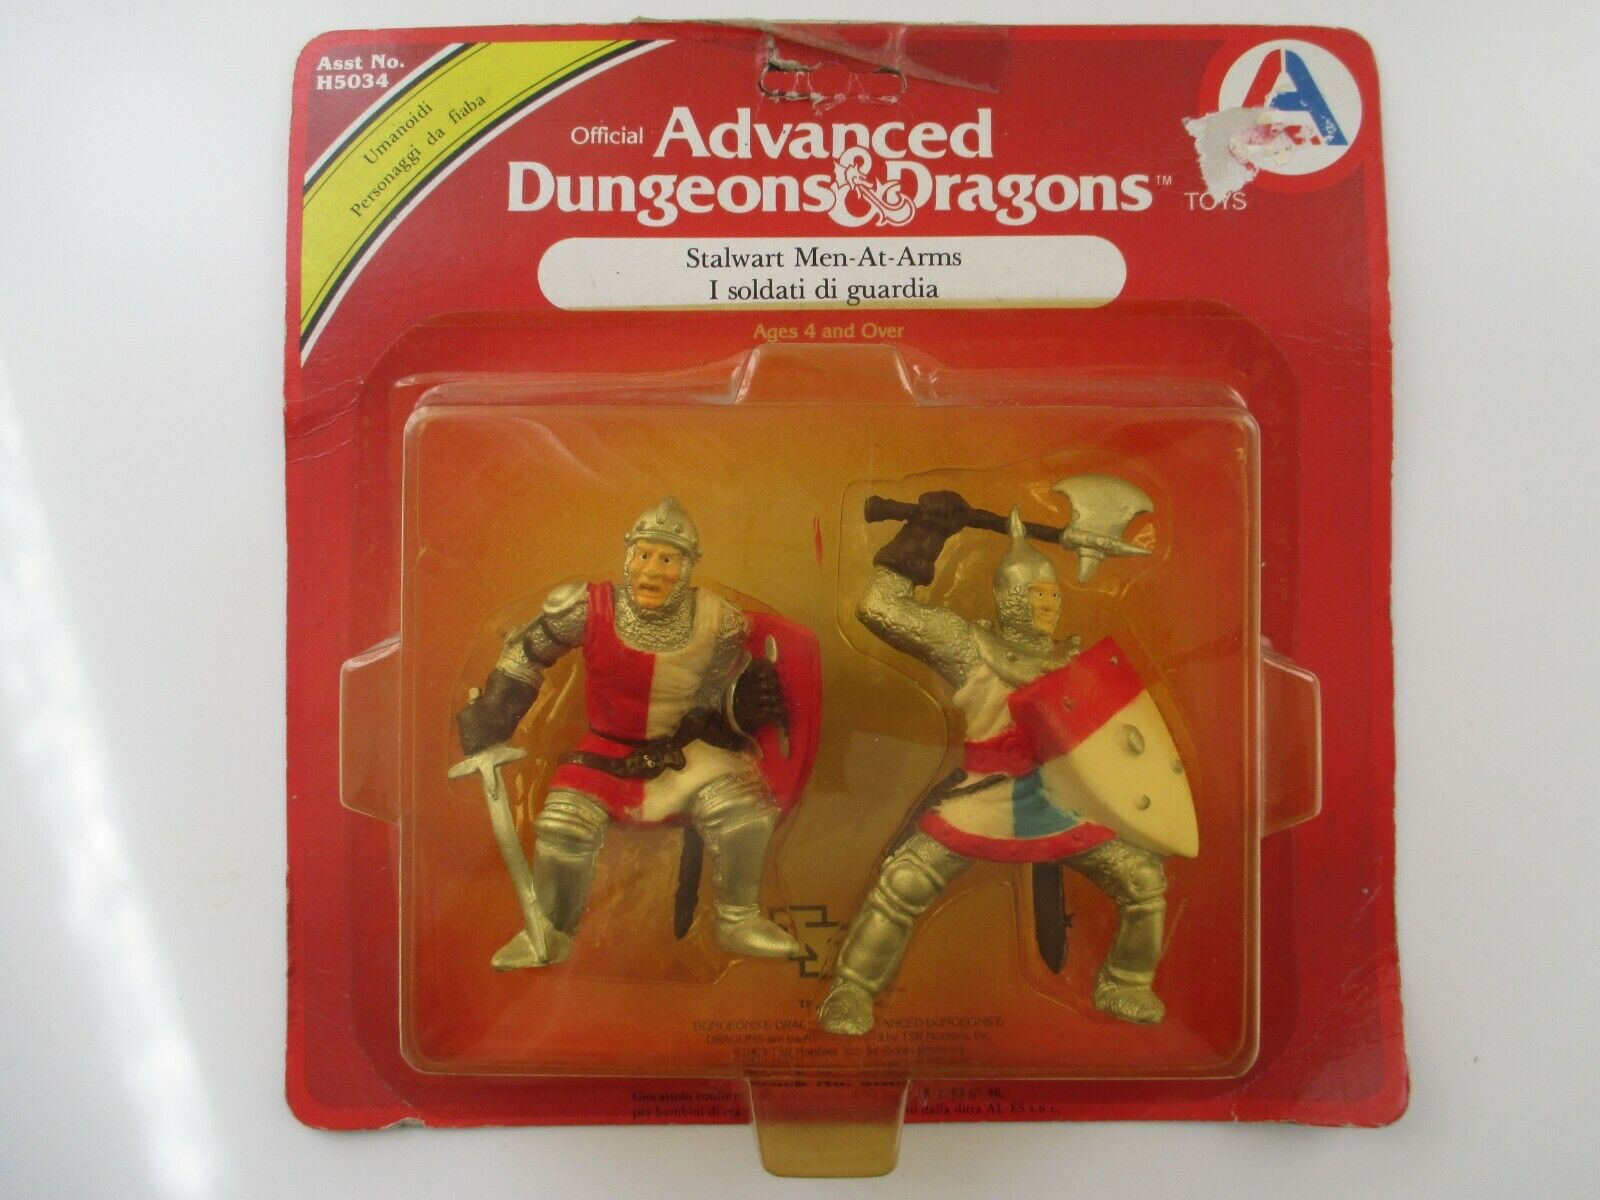 STALWART MEN-AT-ARMS ADVANCED DUNGEONS & DRAGONS HOBBIES 5006 NEUF SCELLE 1983